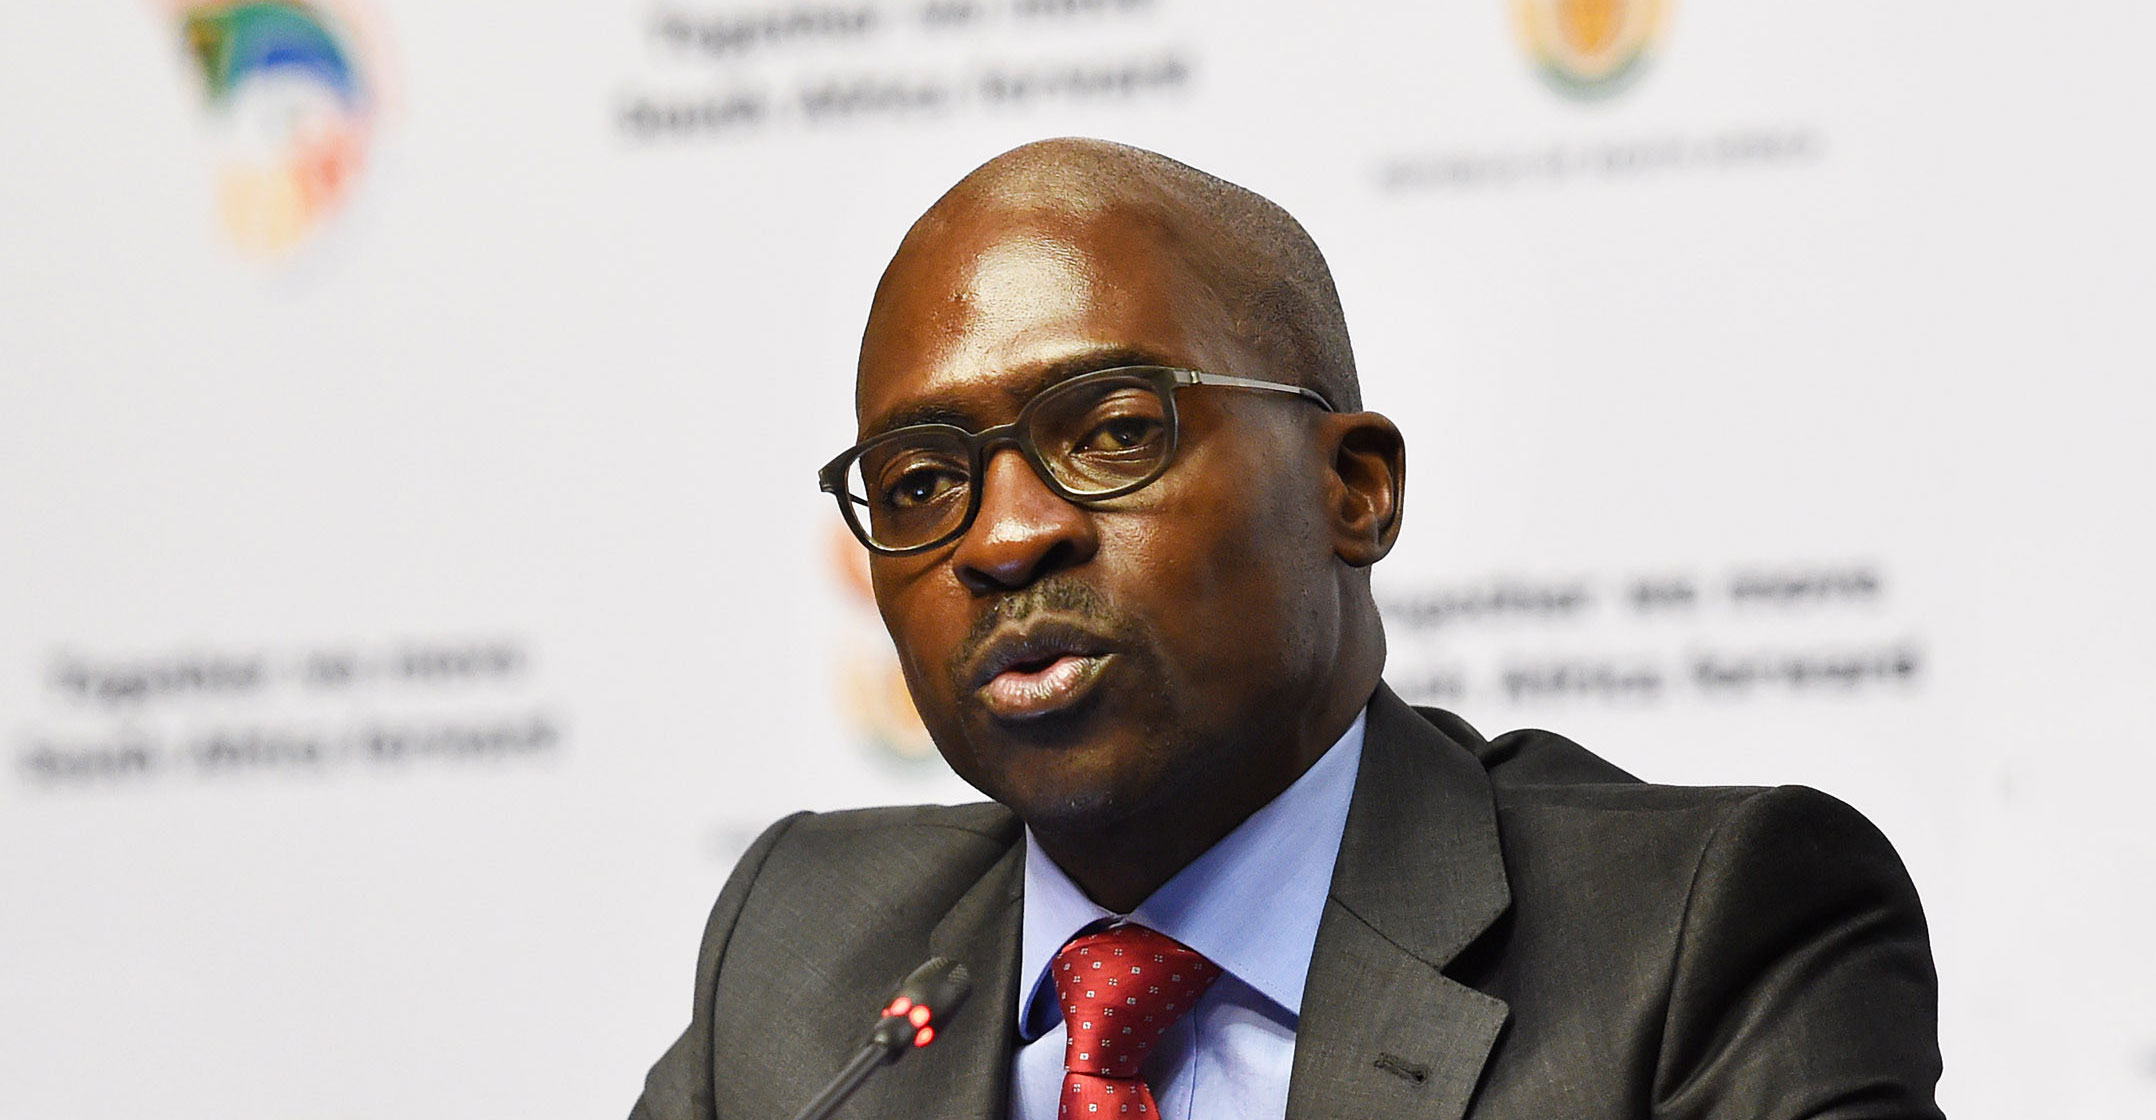 SA may cut spending: Gigaba - TechCentral